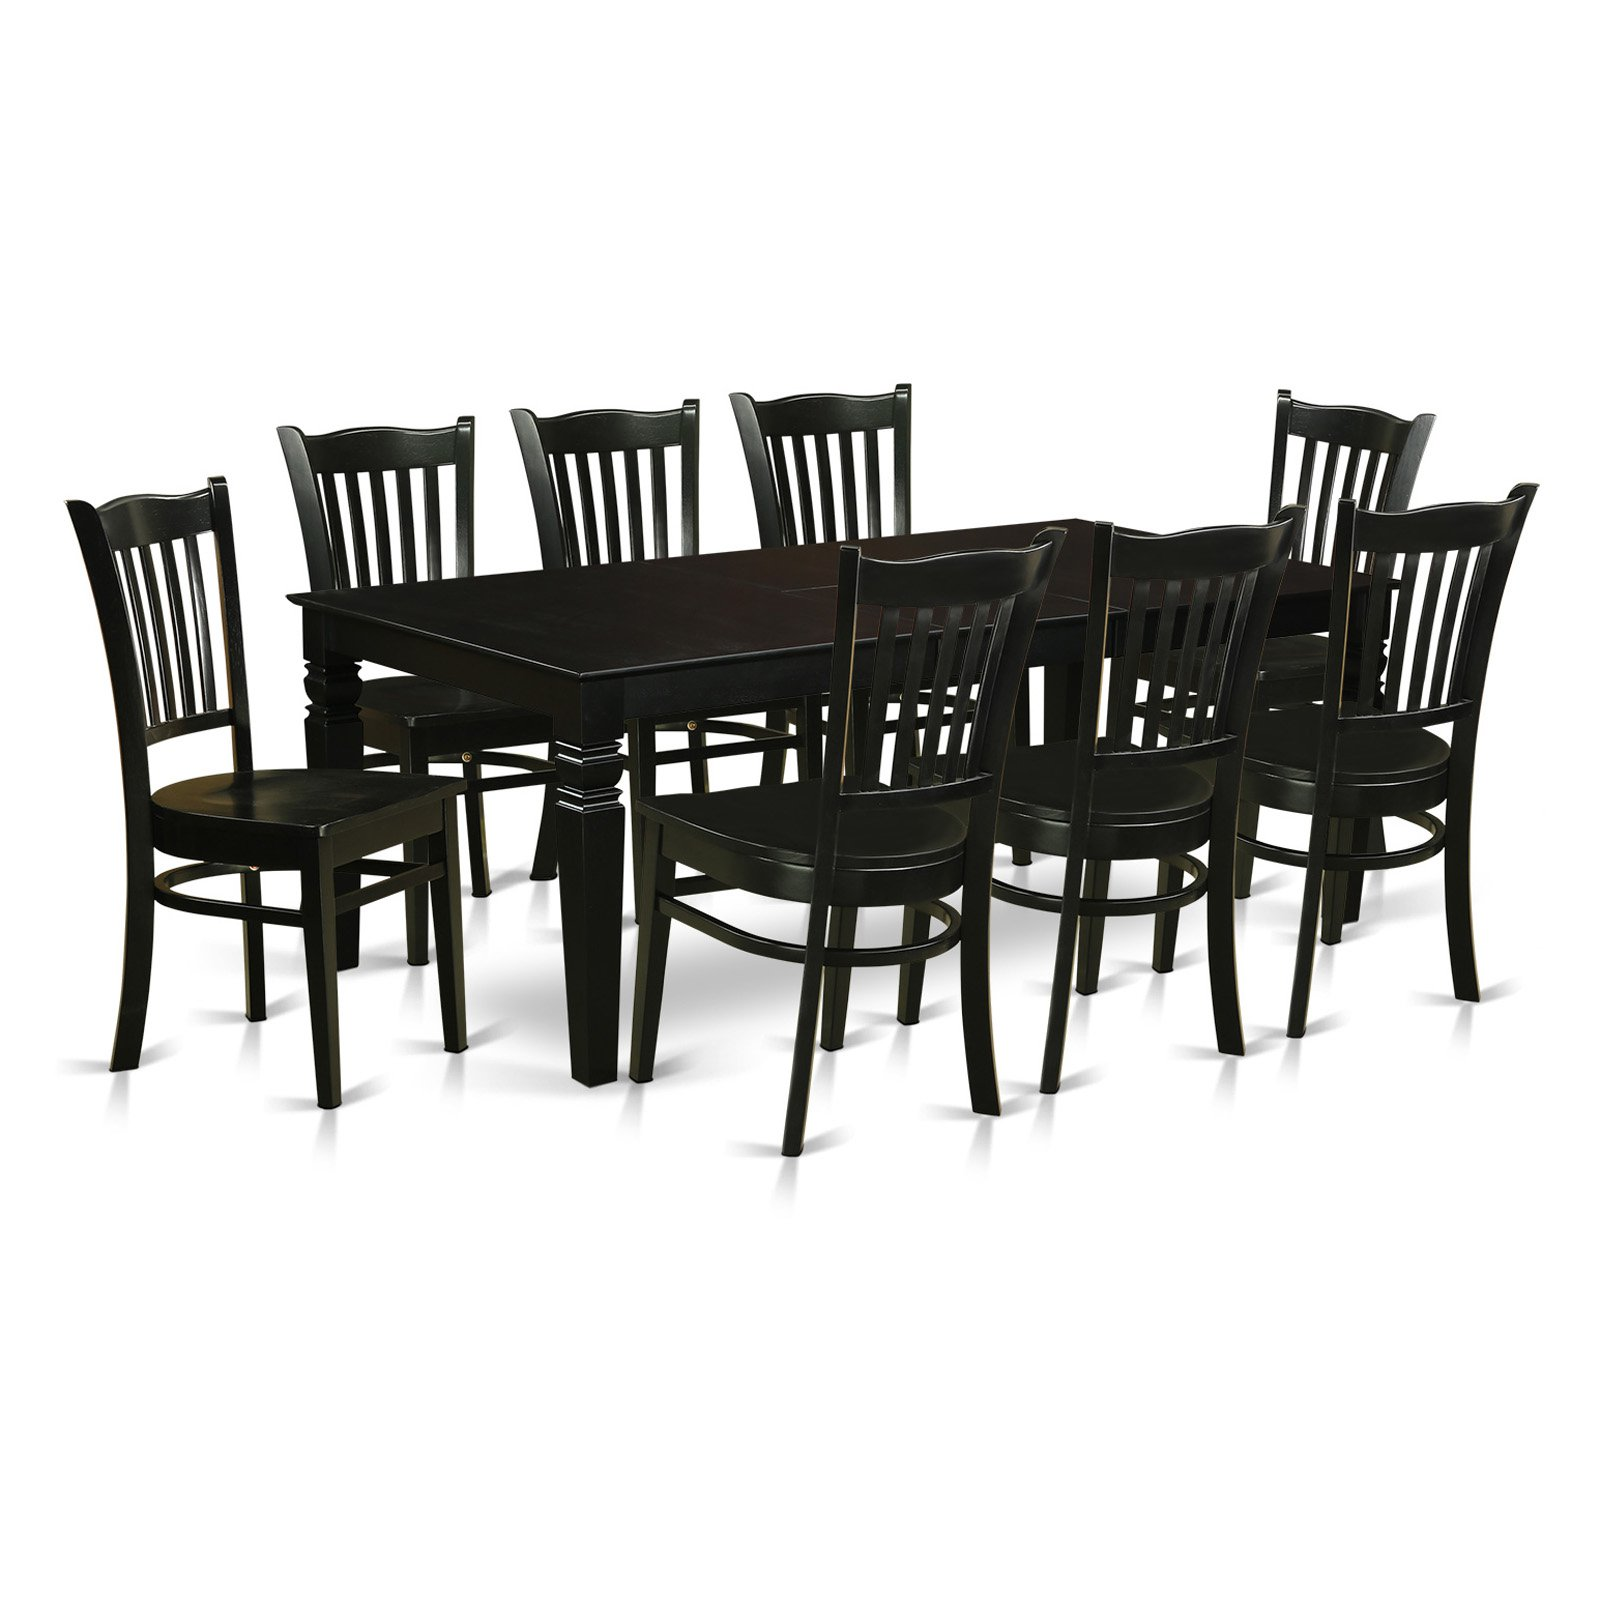 East West Furniture Logan 9 Piece Comb Back Dining Table Set